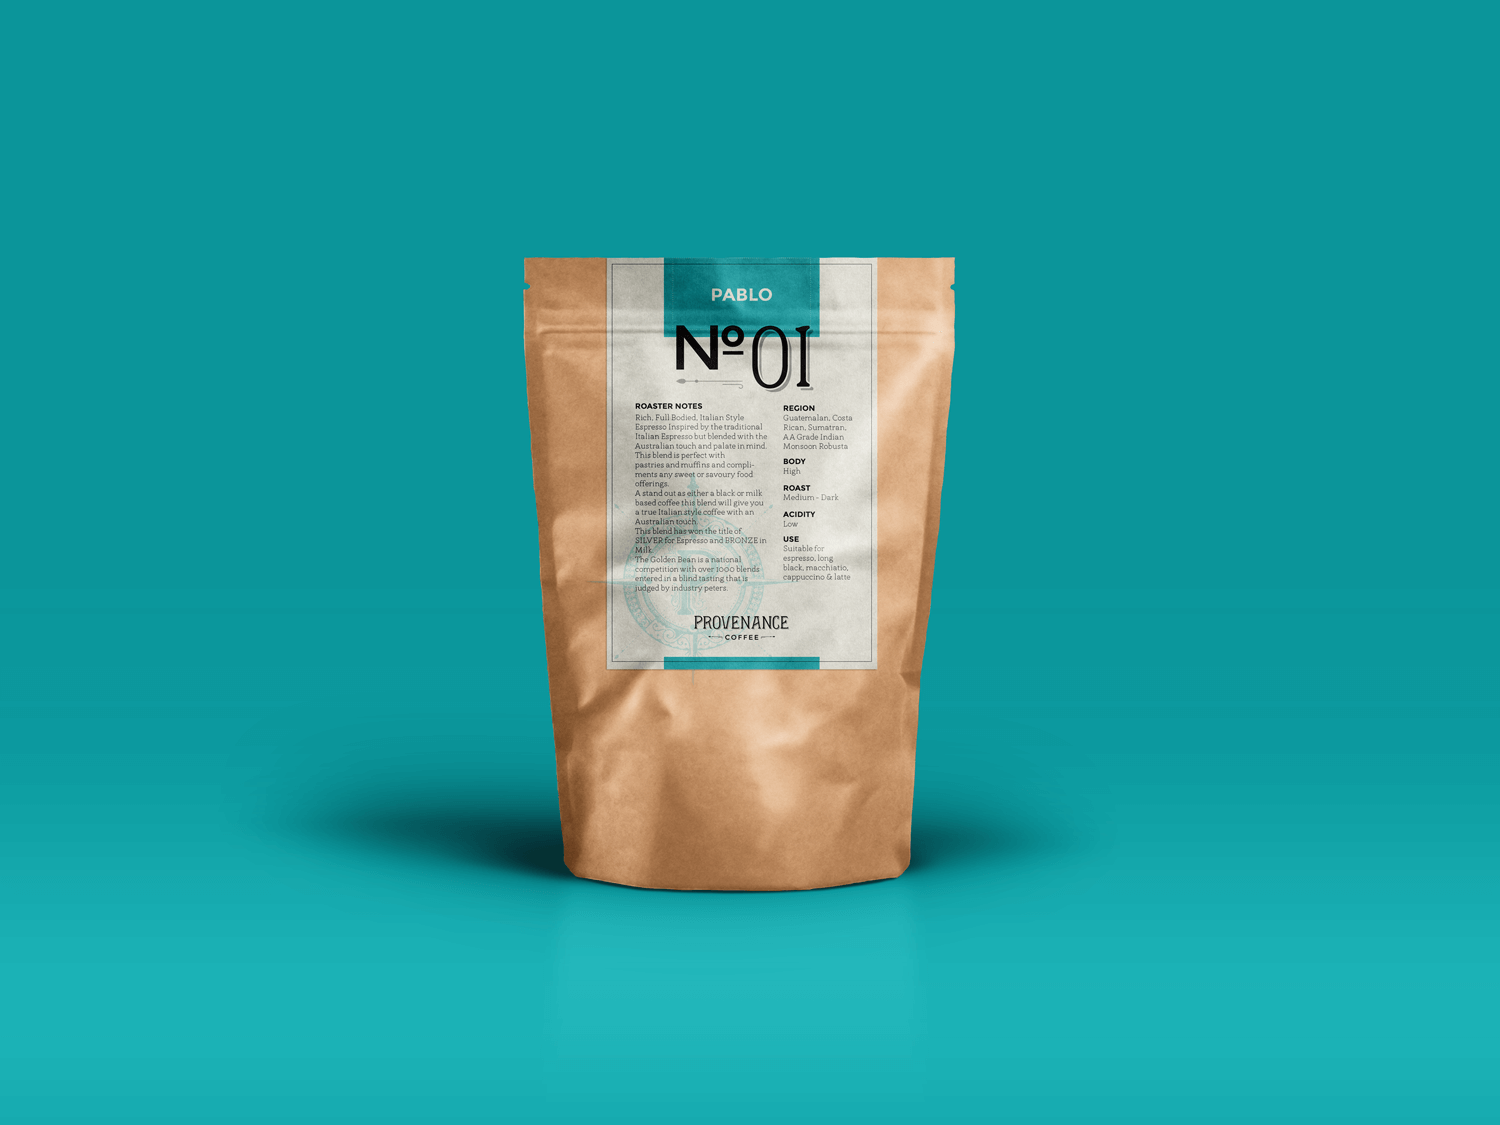 Paper-Bag-packaging-Mockup-psdA